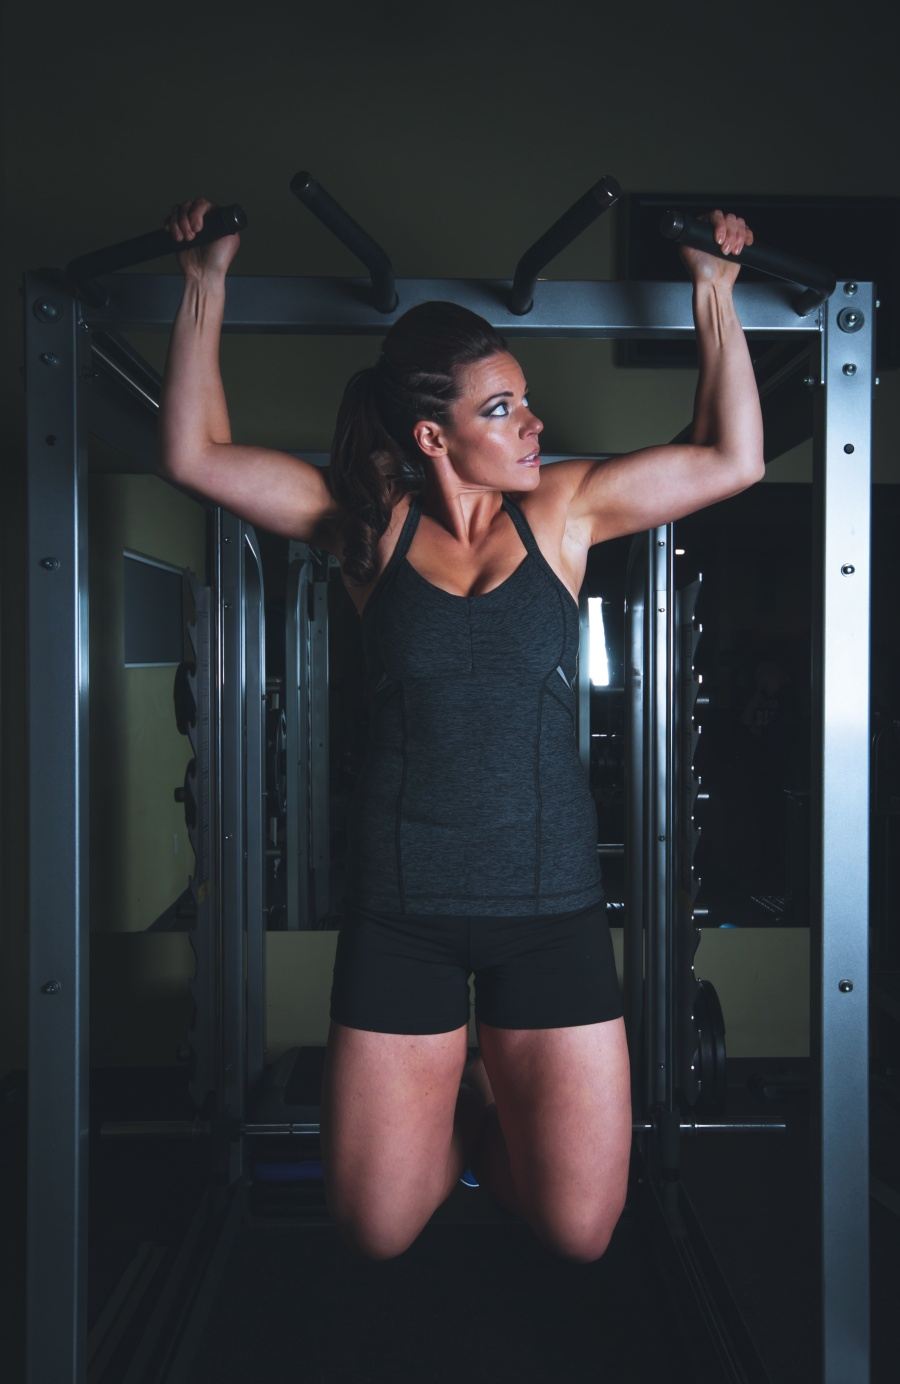 woman in black working out pull up bar